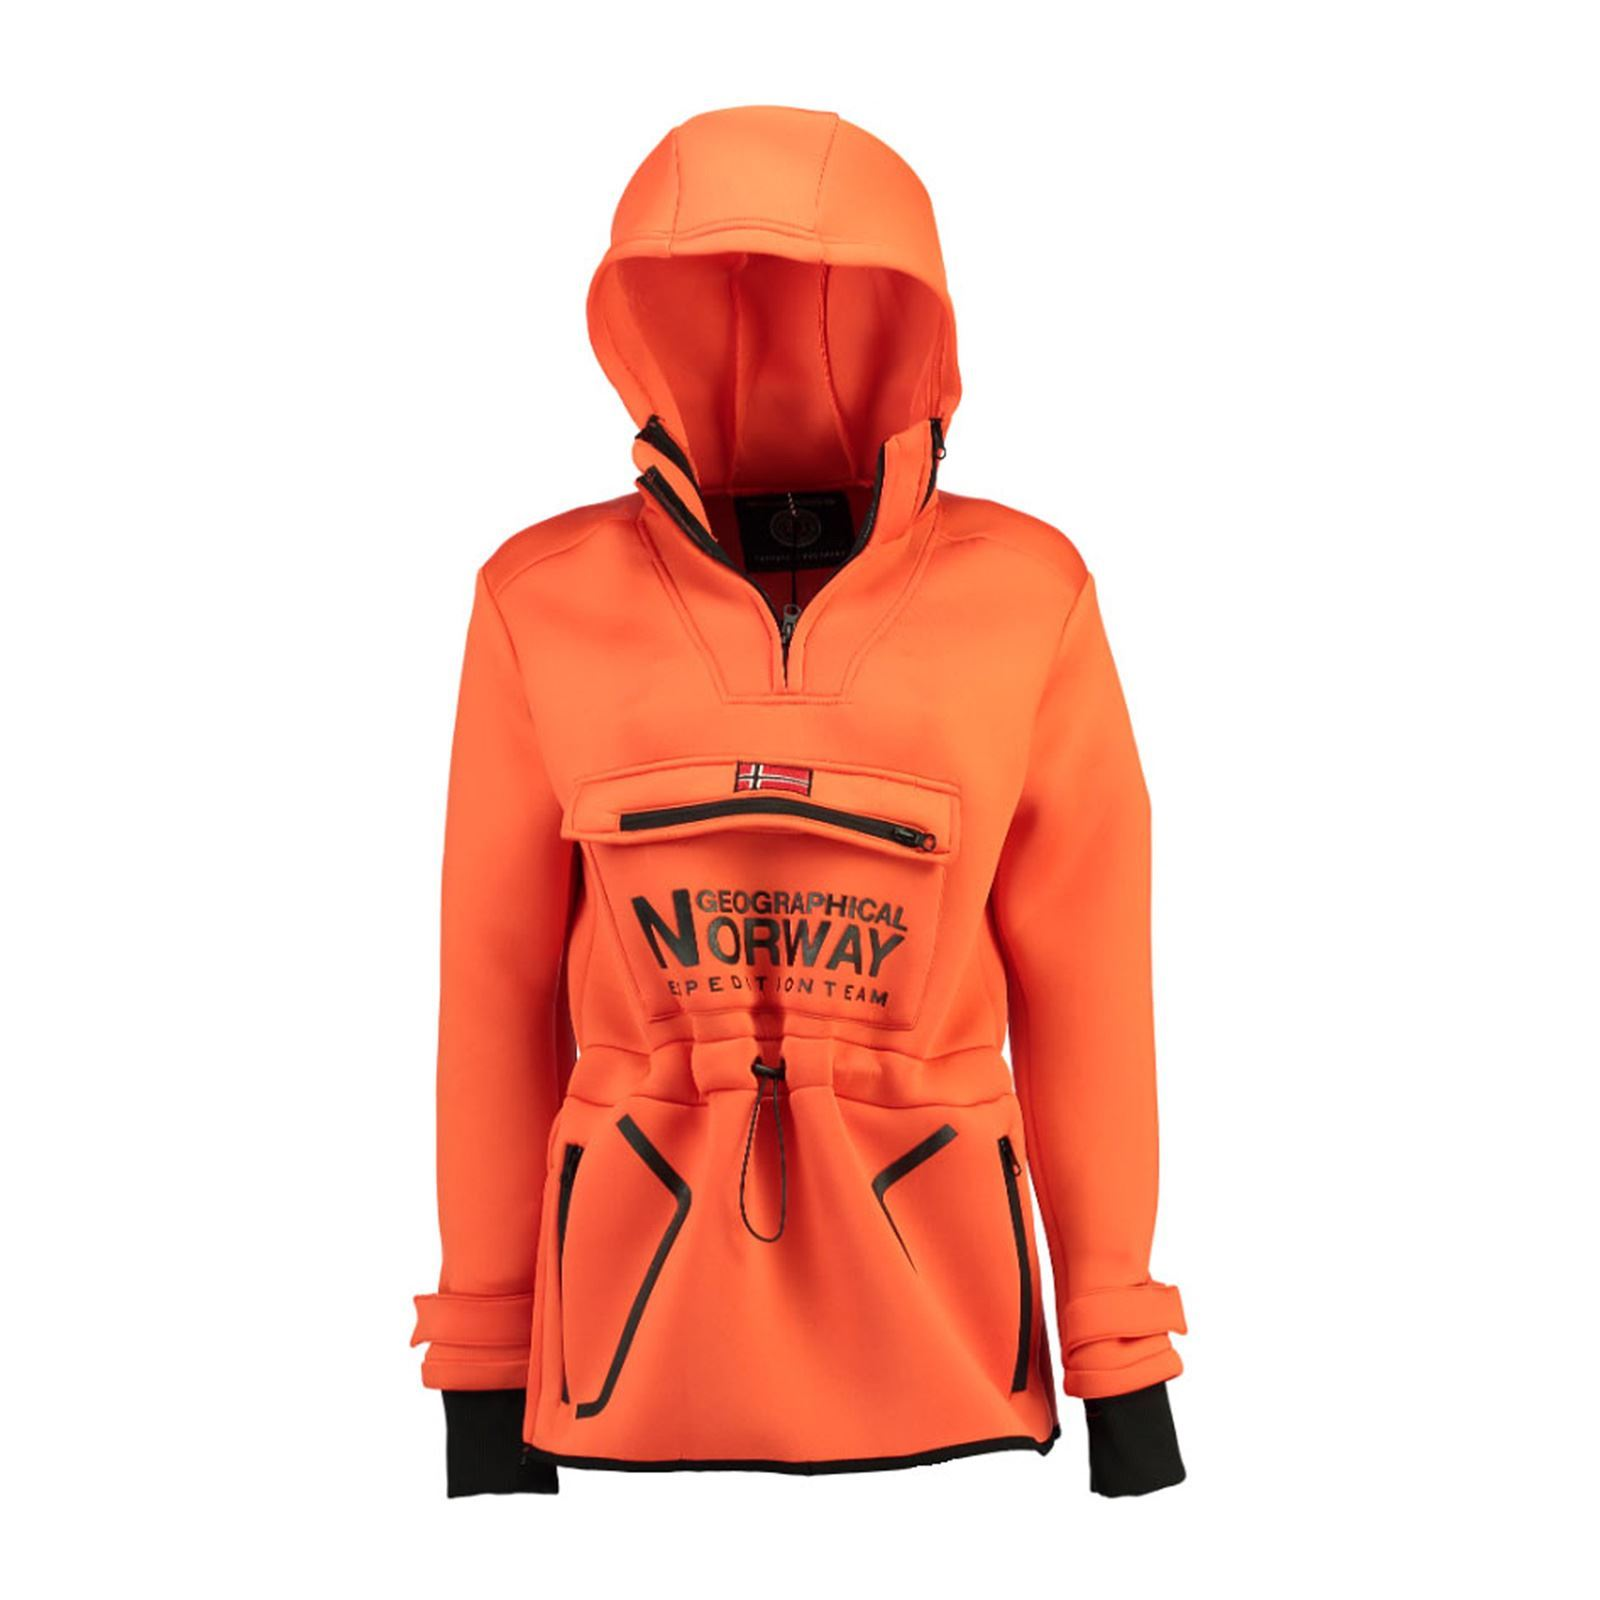 Orange Femme Norway TabernacVeste V Geographical Softshell l1TJFc3K